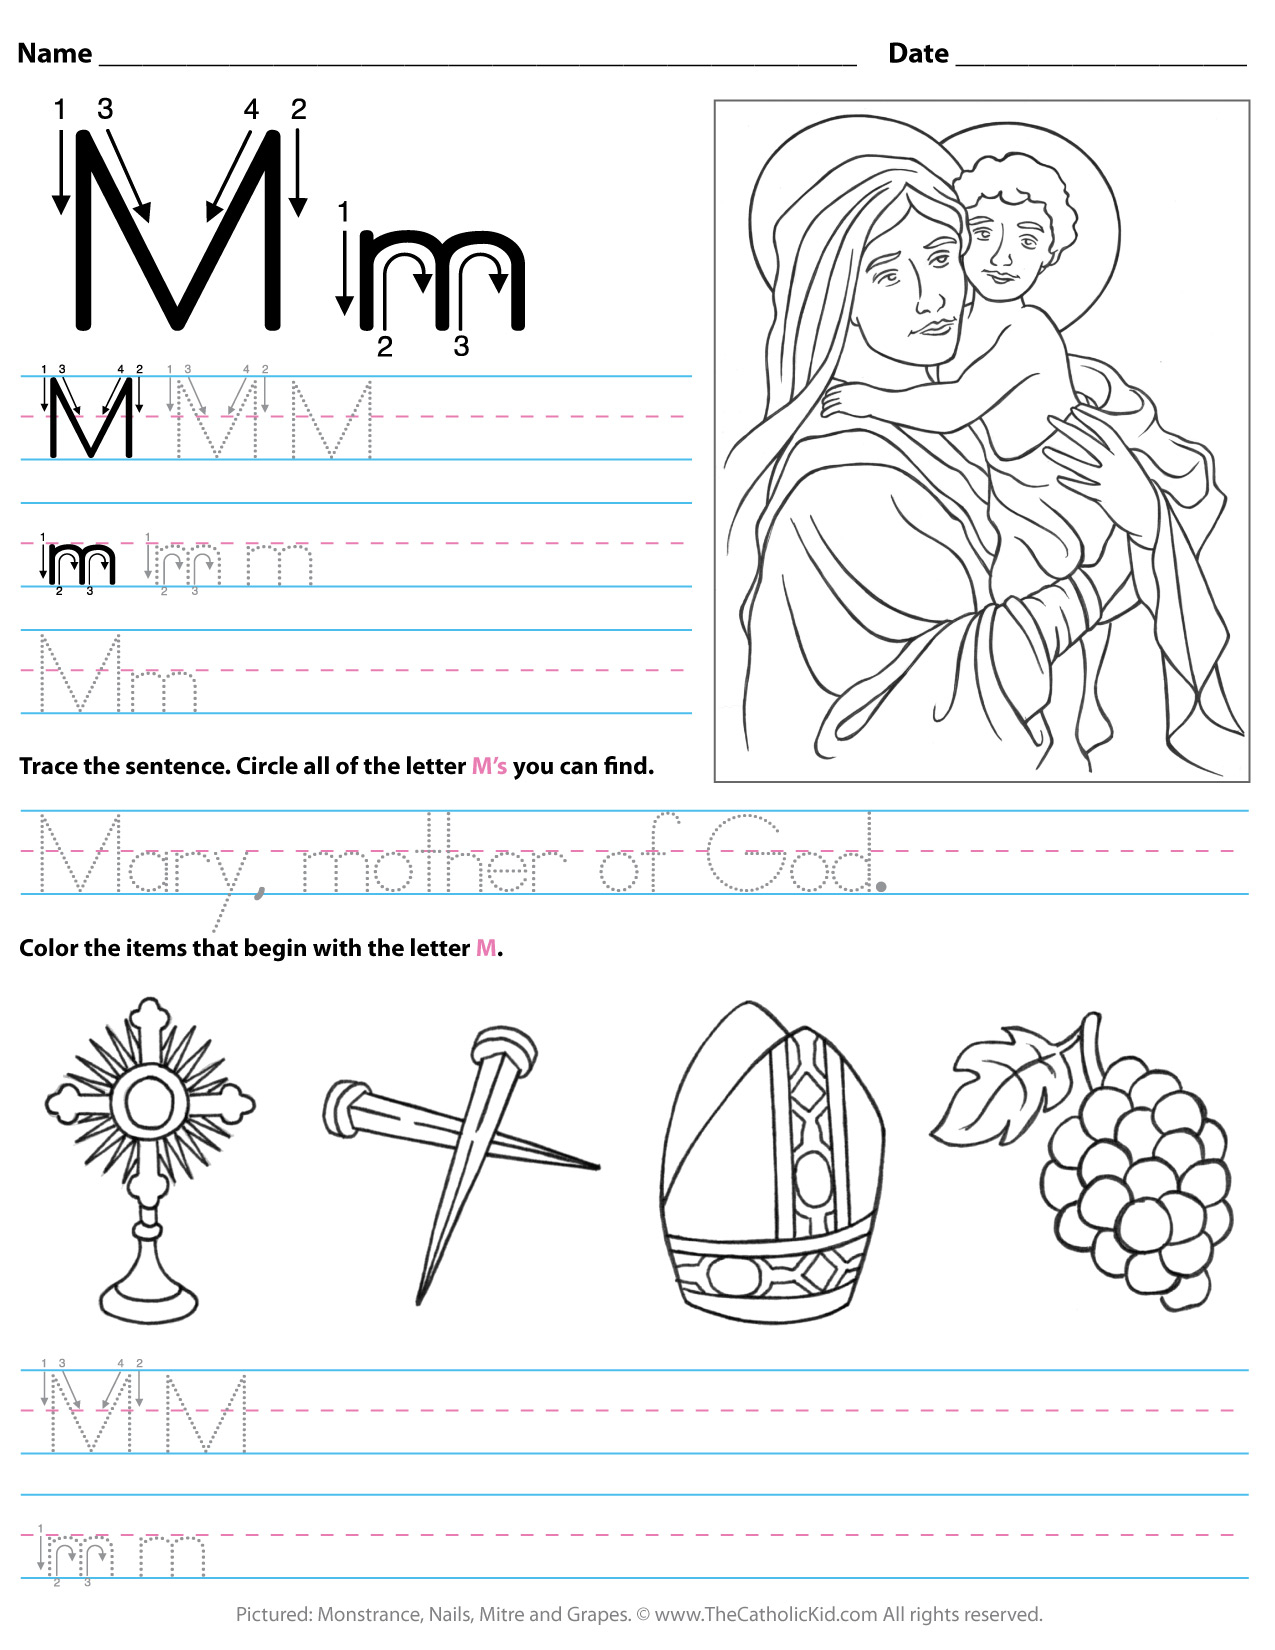 Catholic Alphabet Letter M Worksheet Preschool Kindergarten with regard to Letter M Worksheets For Kindergarten